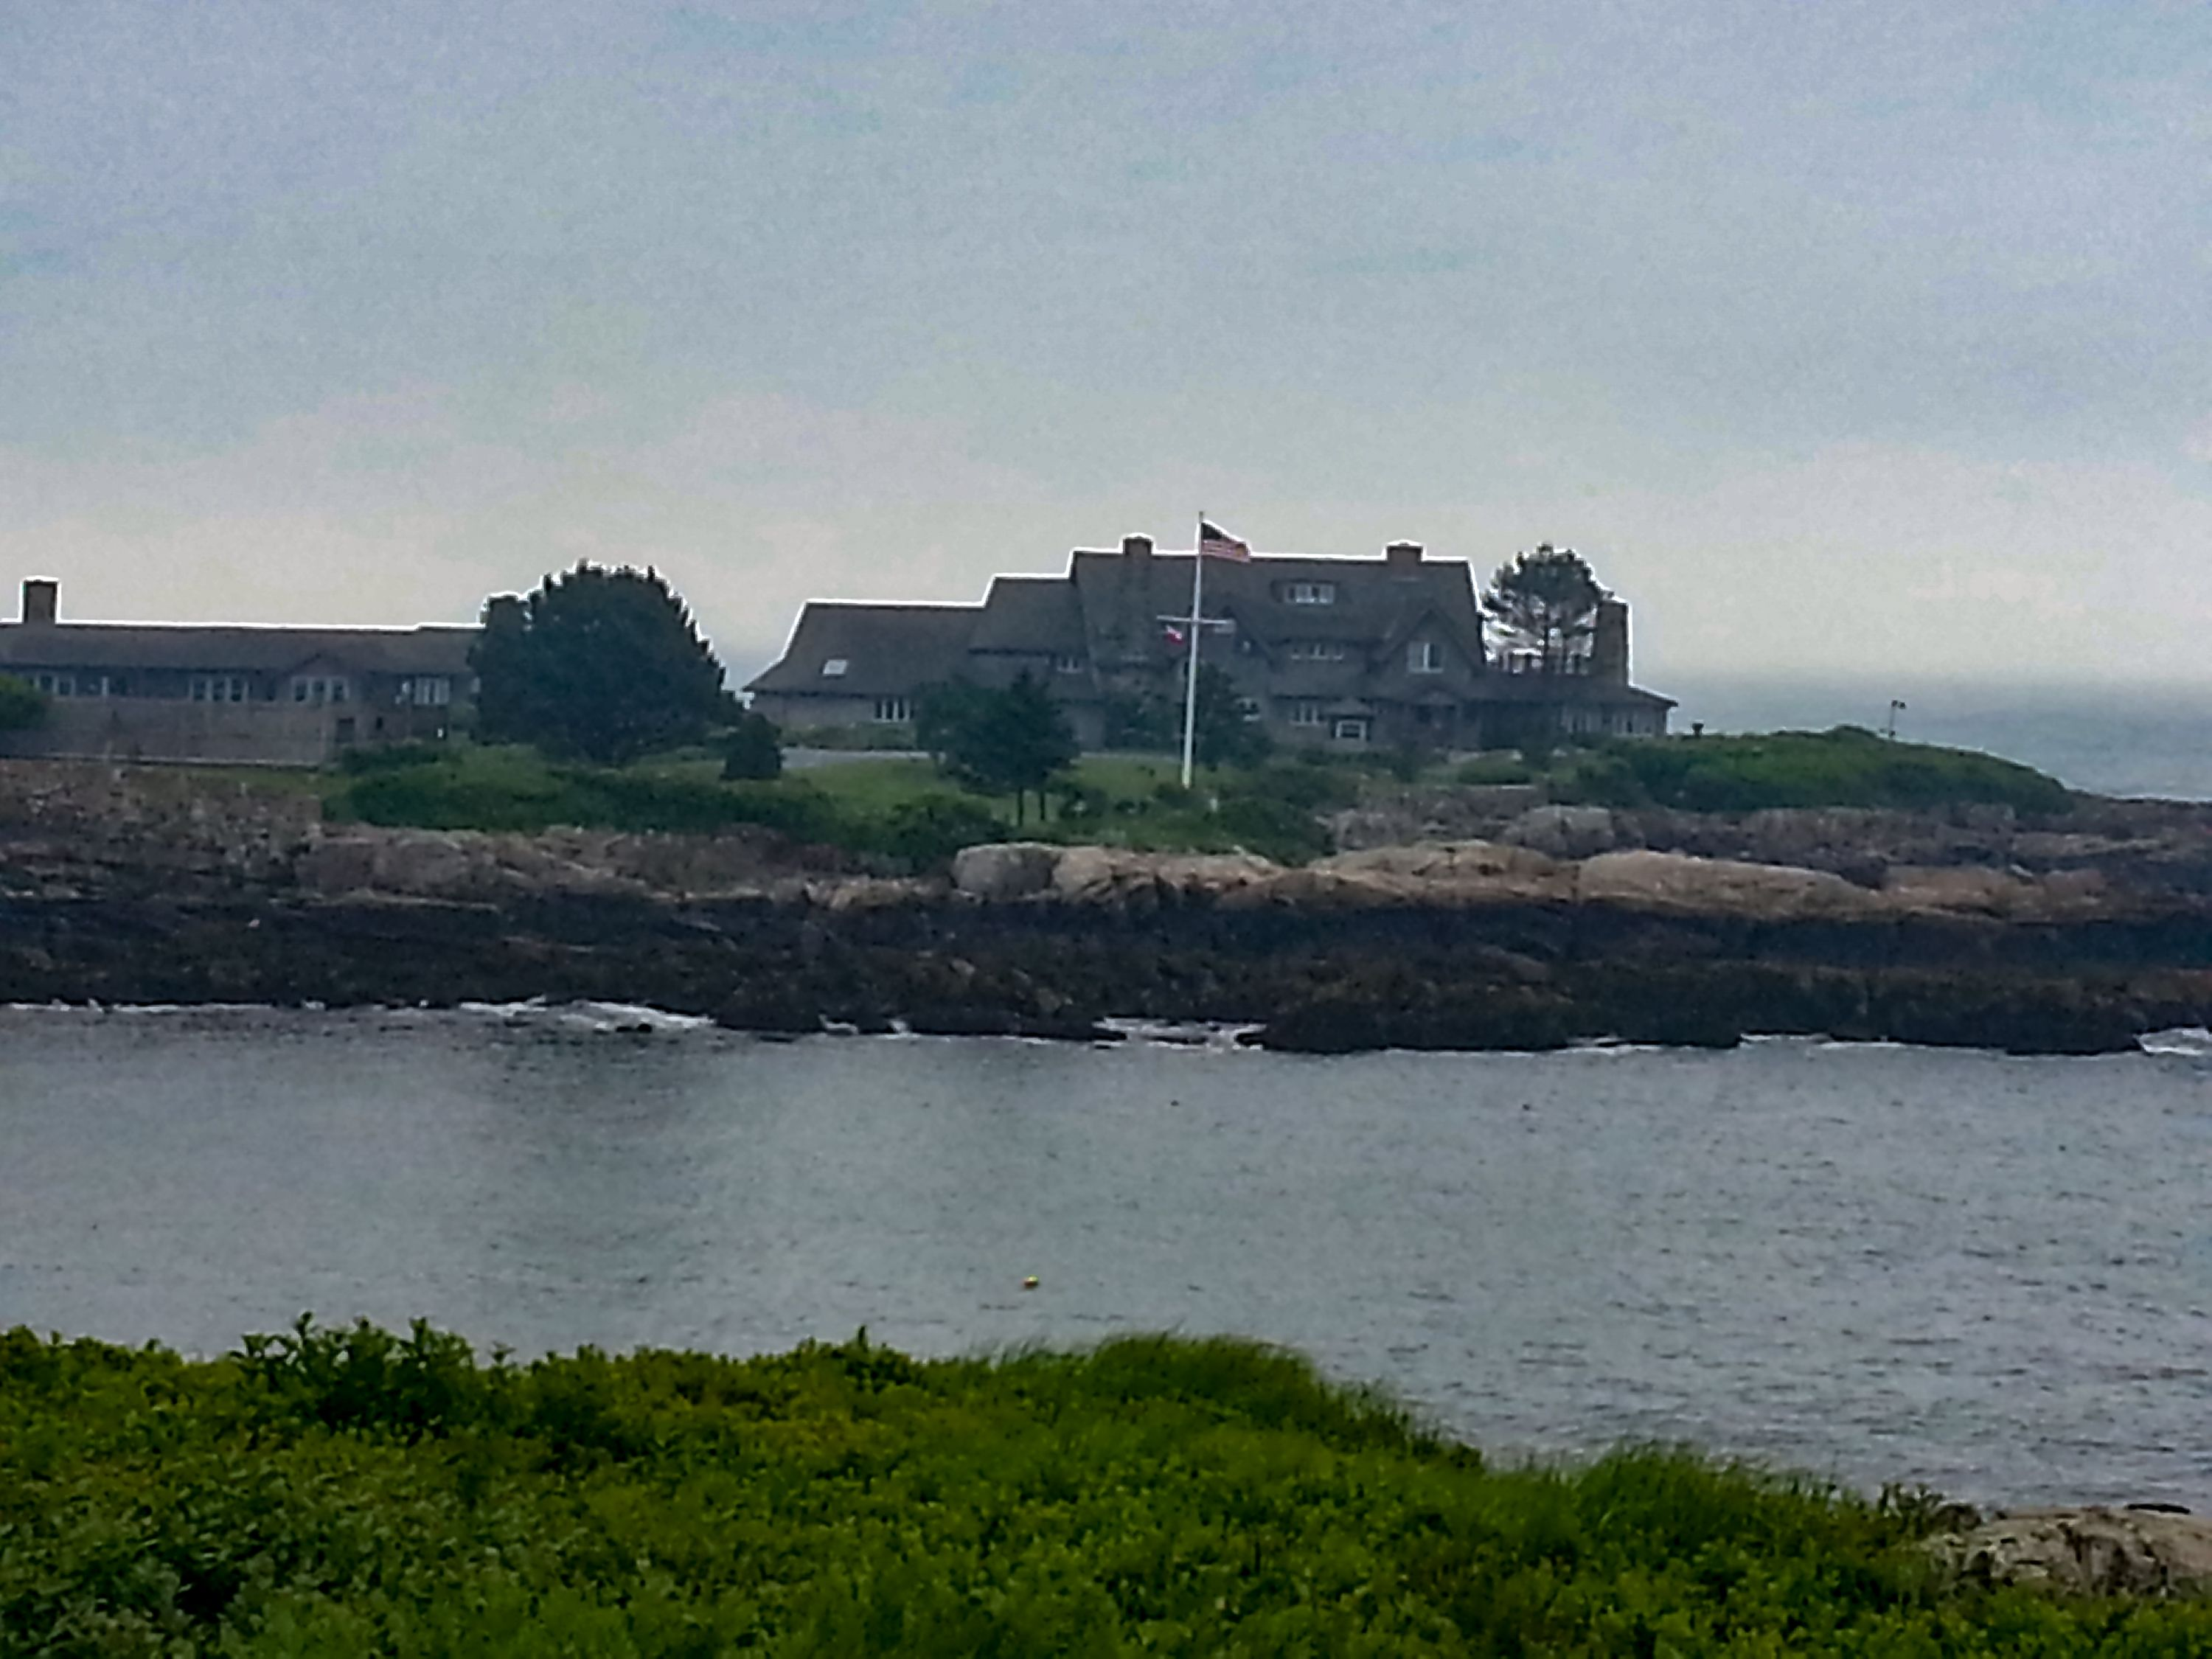 State Farm Free Quote George Bush Home Kennebunkport Get A Free Framed Print With